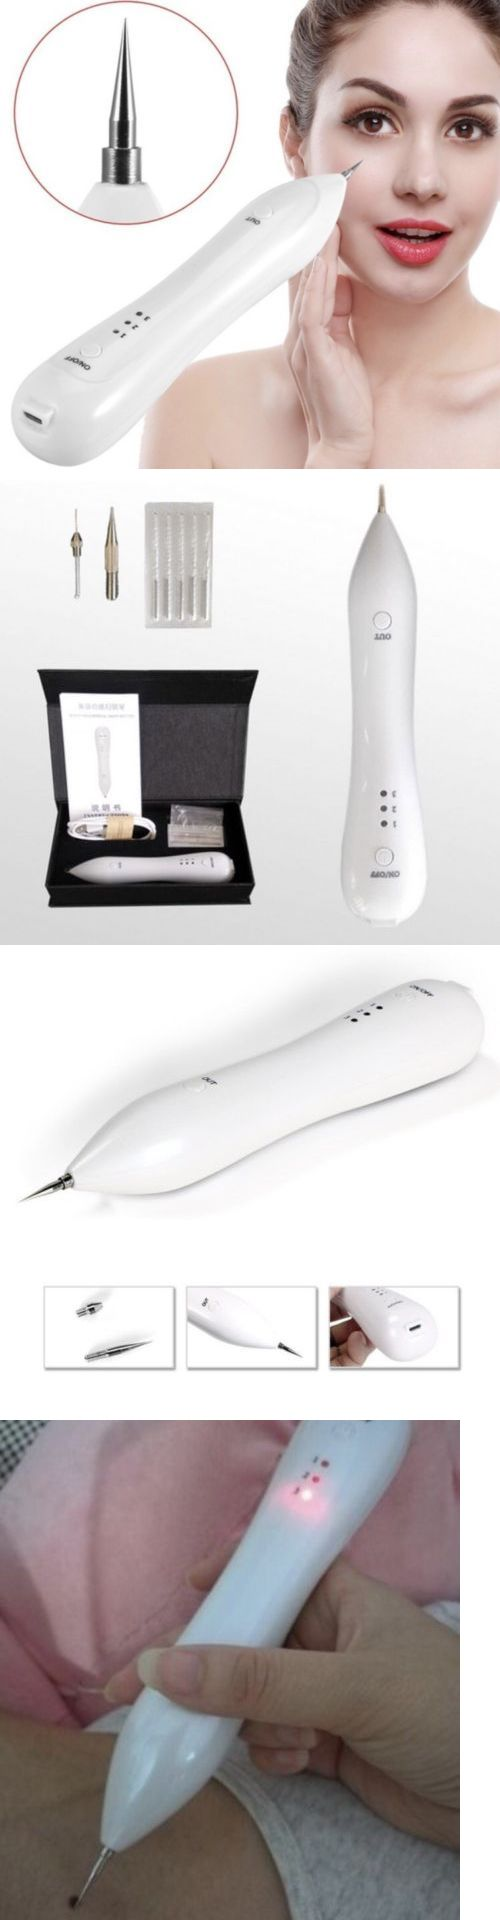 Tattoo Removal Machines: Moles, Freckles, Scars Acne, Tattoos, Skin Tags And More Laser Pen Remover Machine -> BUY IT NOW ONLY: $38.99 on eBay!